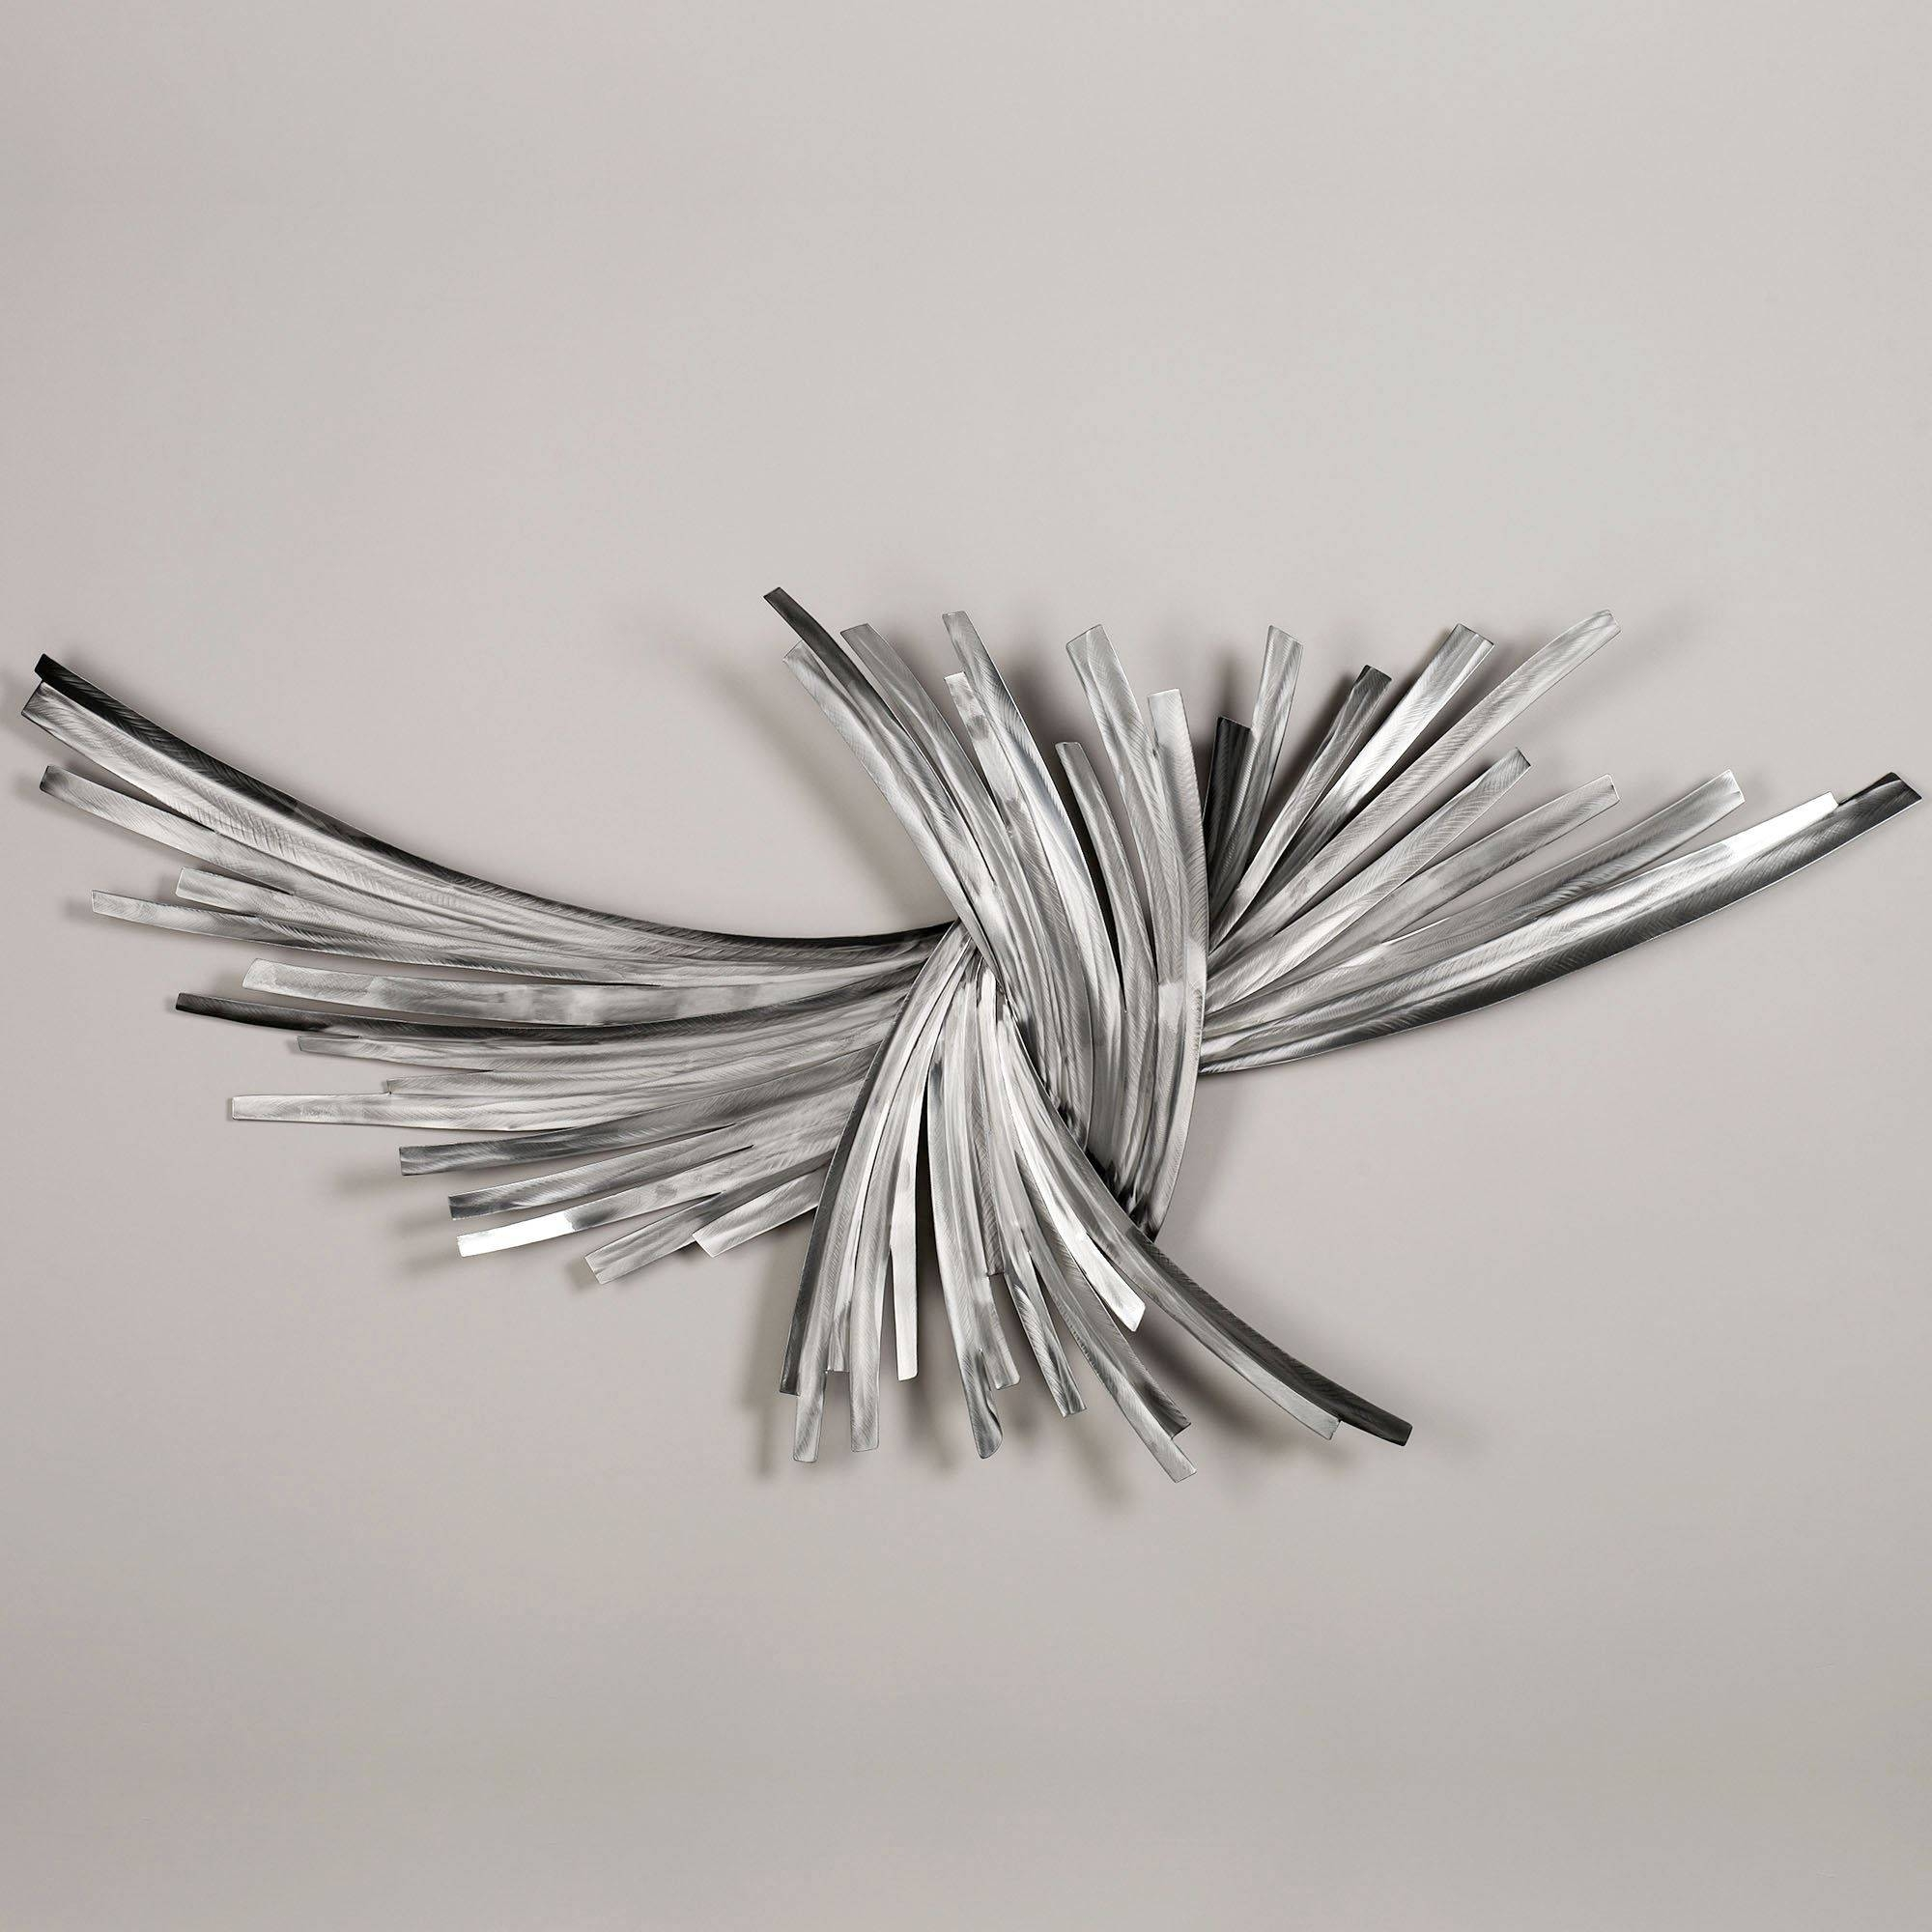 Contemporary Metal Wall Art Sculptures | Touch Of Class Throughout Most Current Contemporary Metal Wall Art (View 6 of 20)